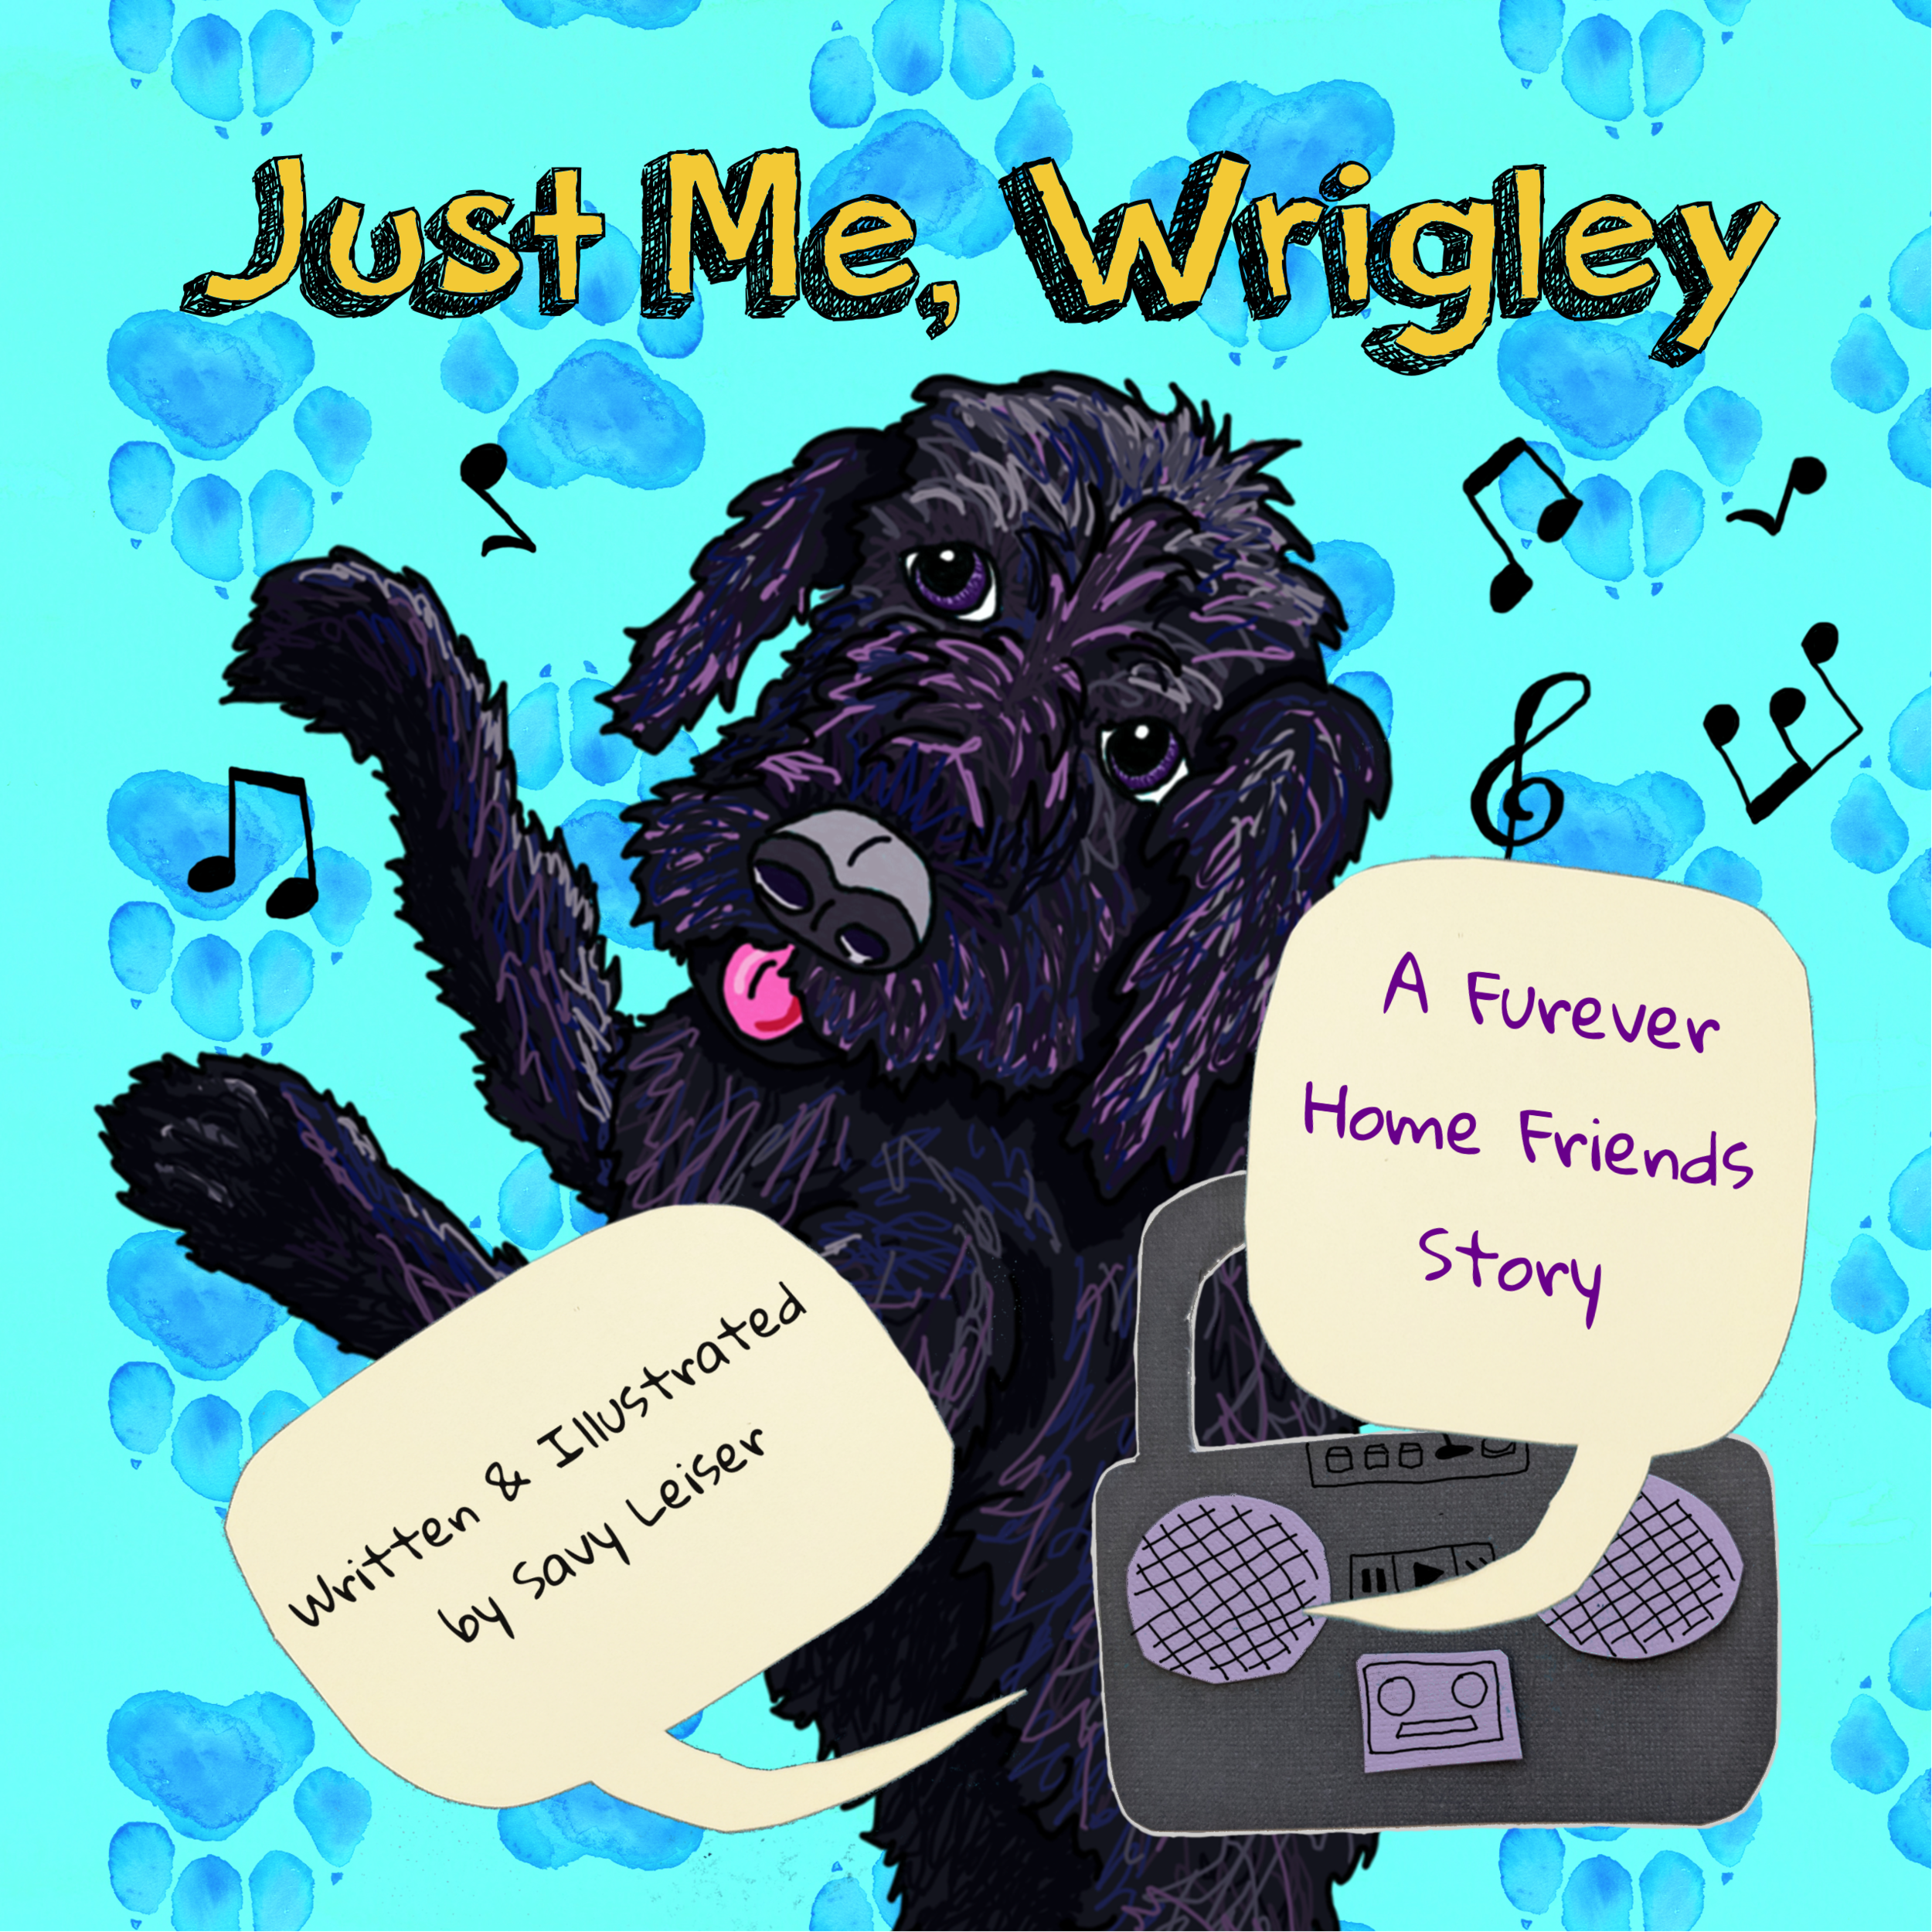 wrigley cover reveal july 18.png